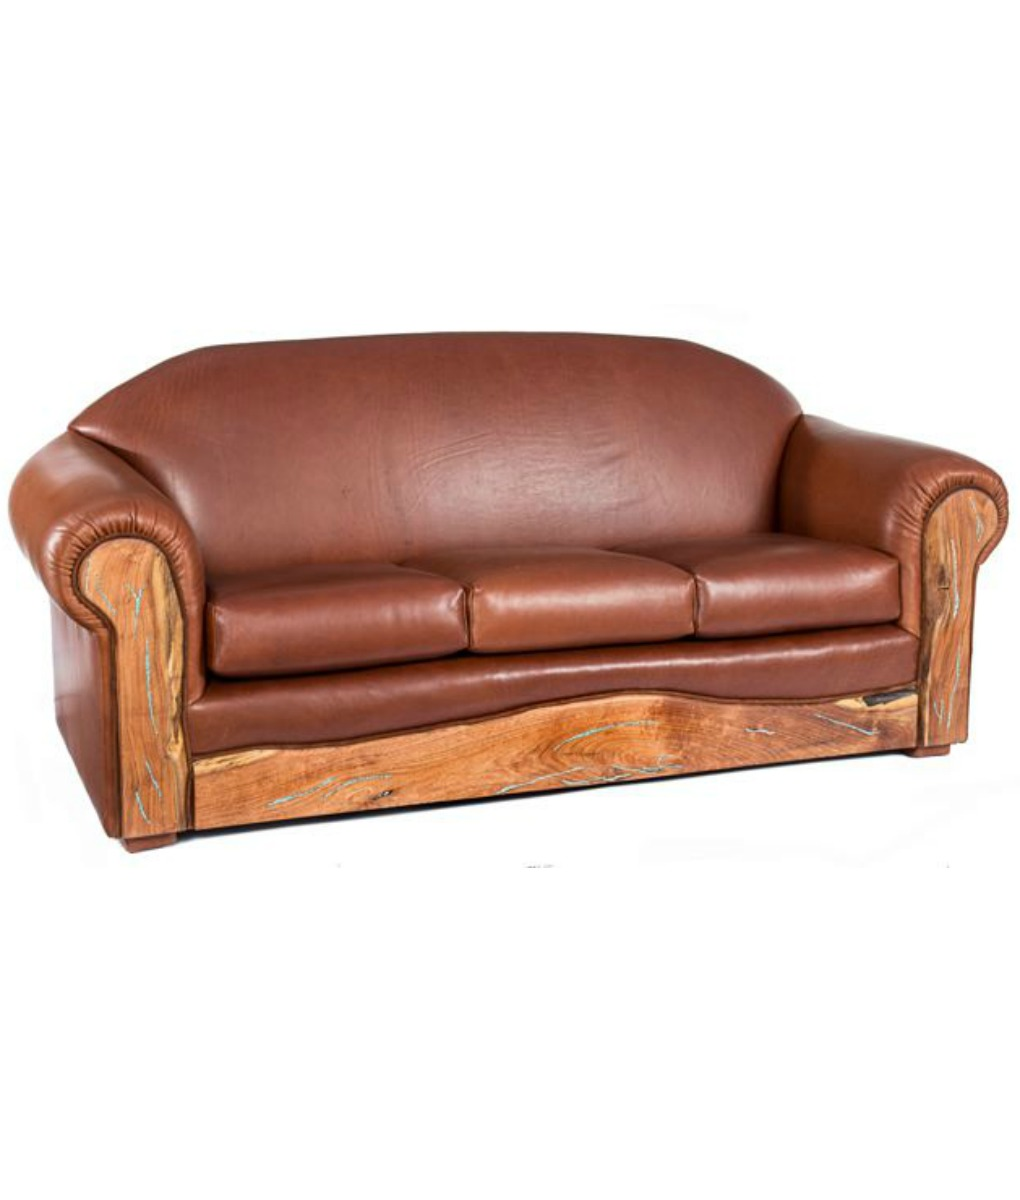 Leather Sofa with Turquoise Inlaid Mesquite arms and kick plate